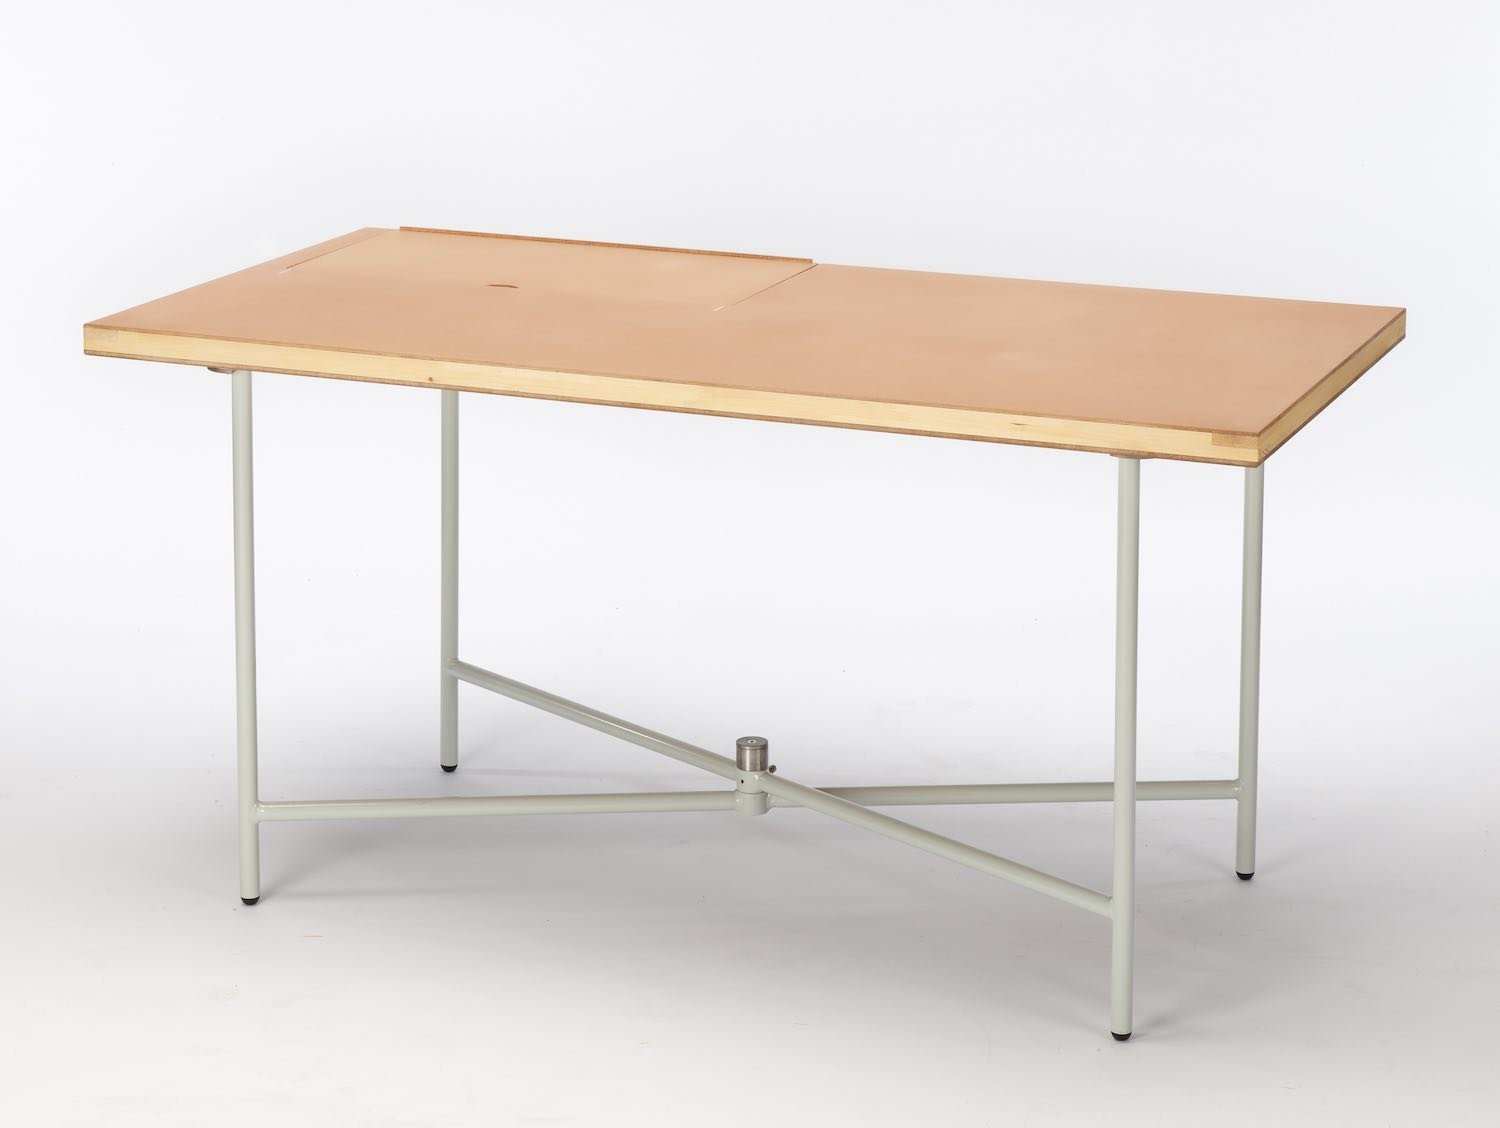 LEVI worktable by Marie Kurstjens and Iva Coskun